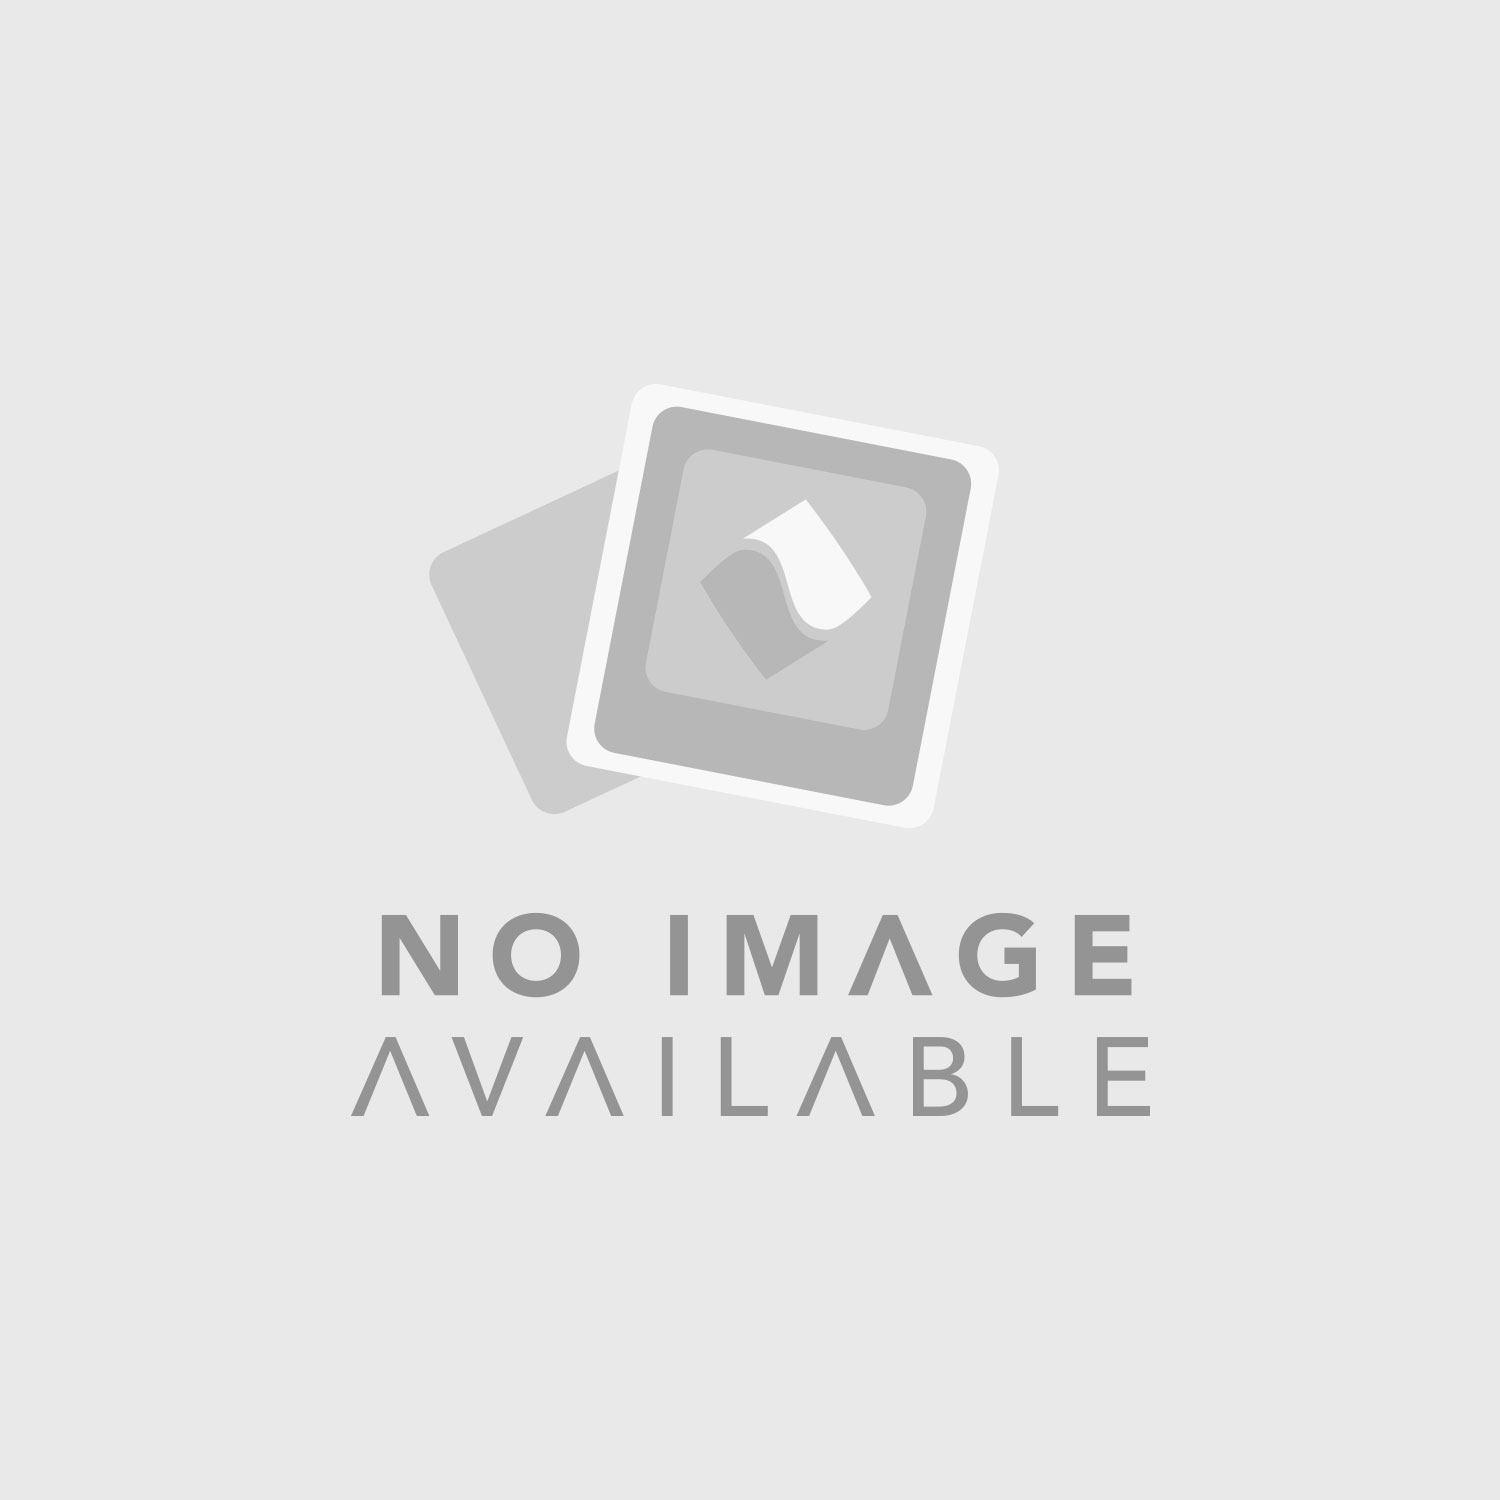 Rosco #89 Roscolux Filter Gel Moss Green (48